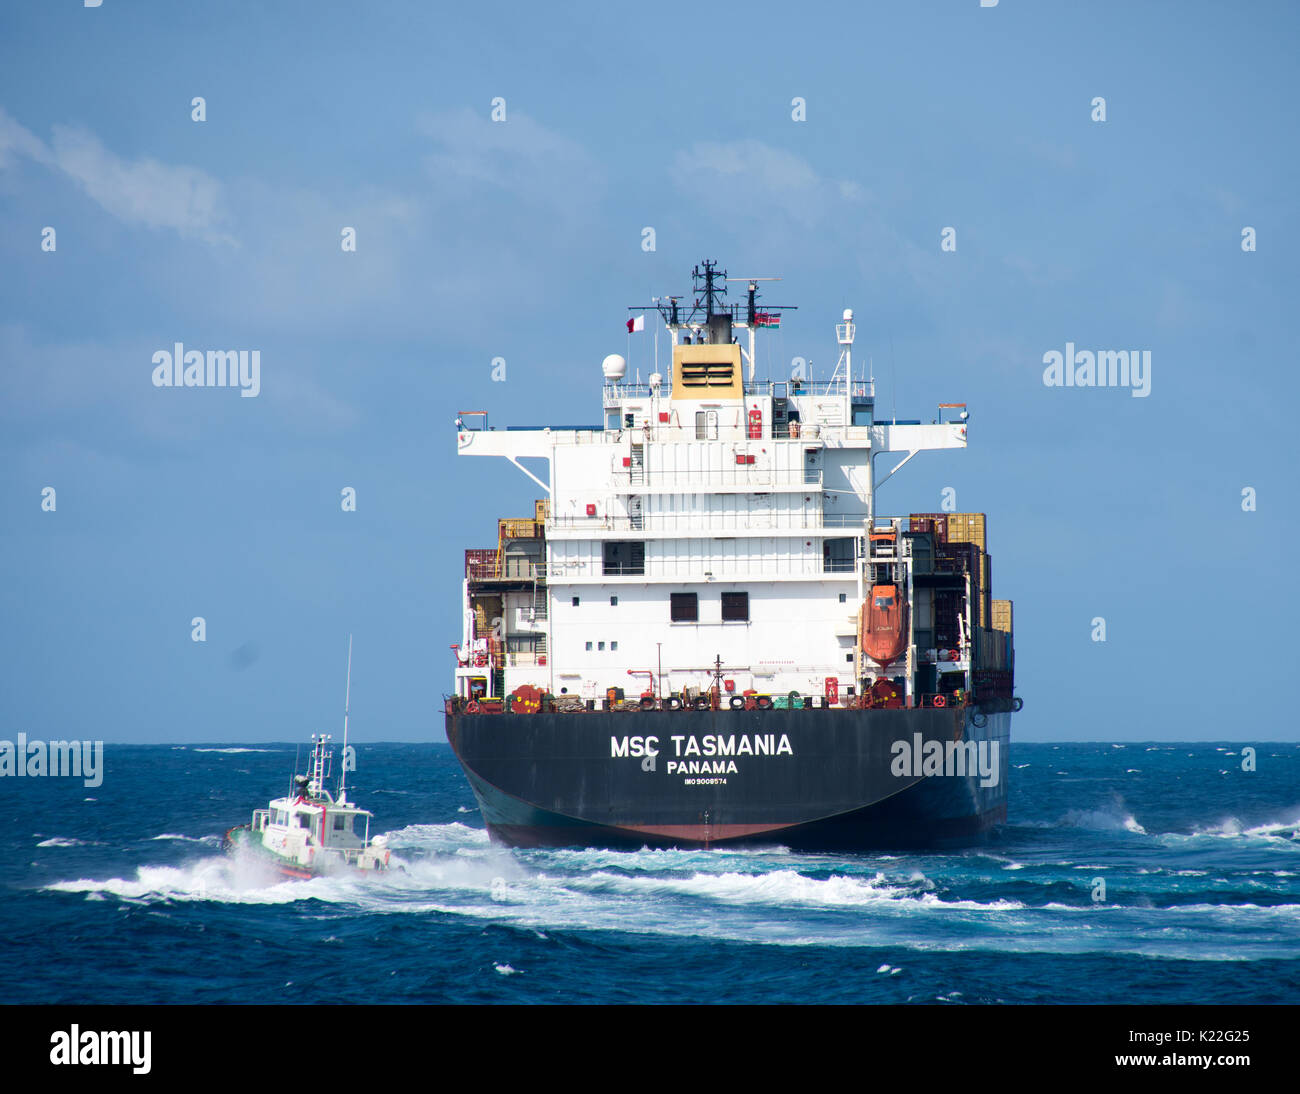 msc container ship vessel stock photos msc container ship vessel stock images alamy. Black Bedroom Furniture Sets. Home Design Ideas